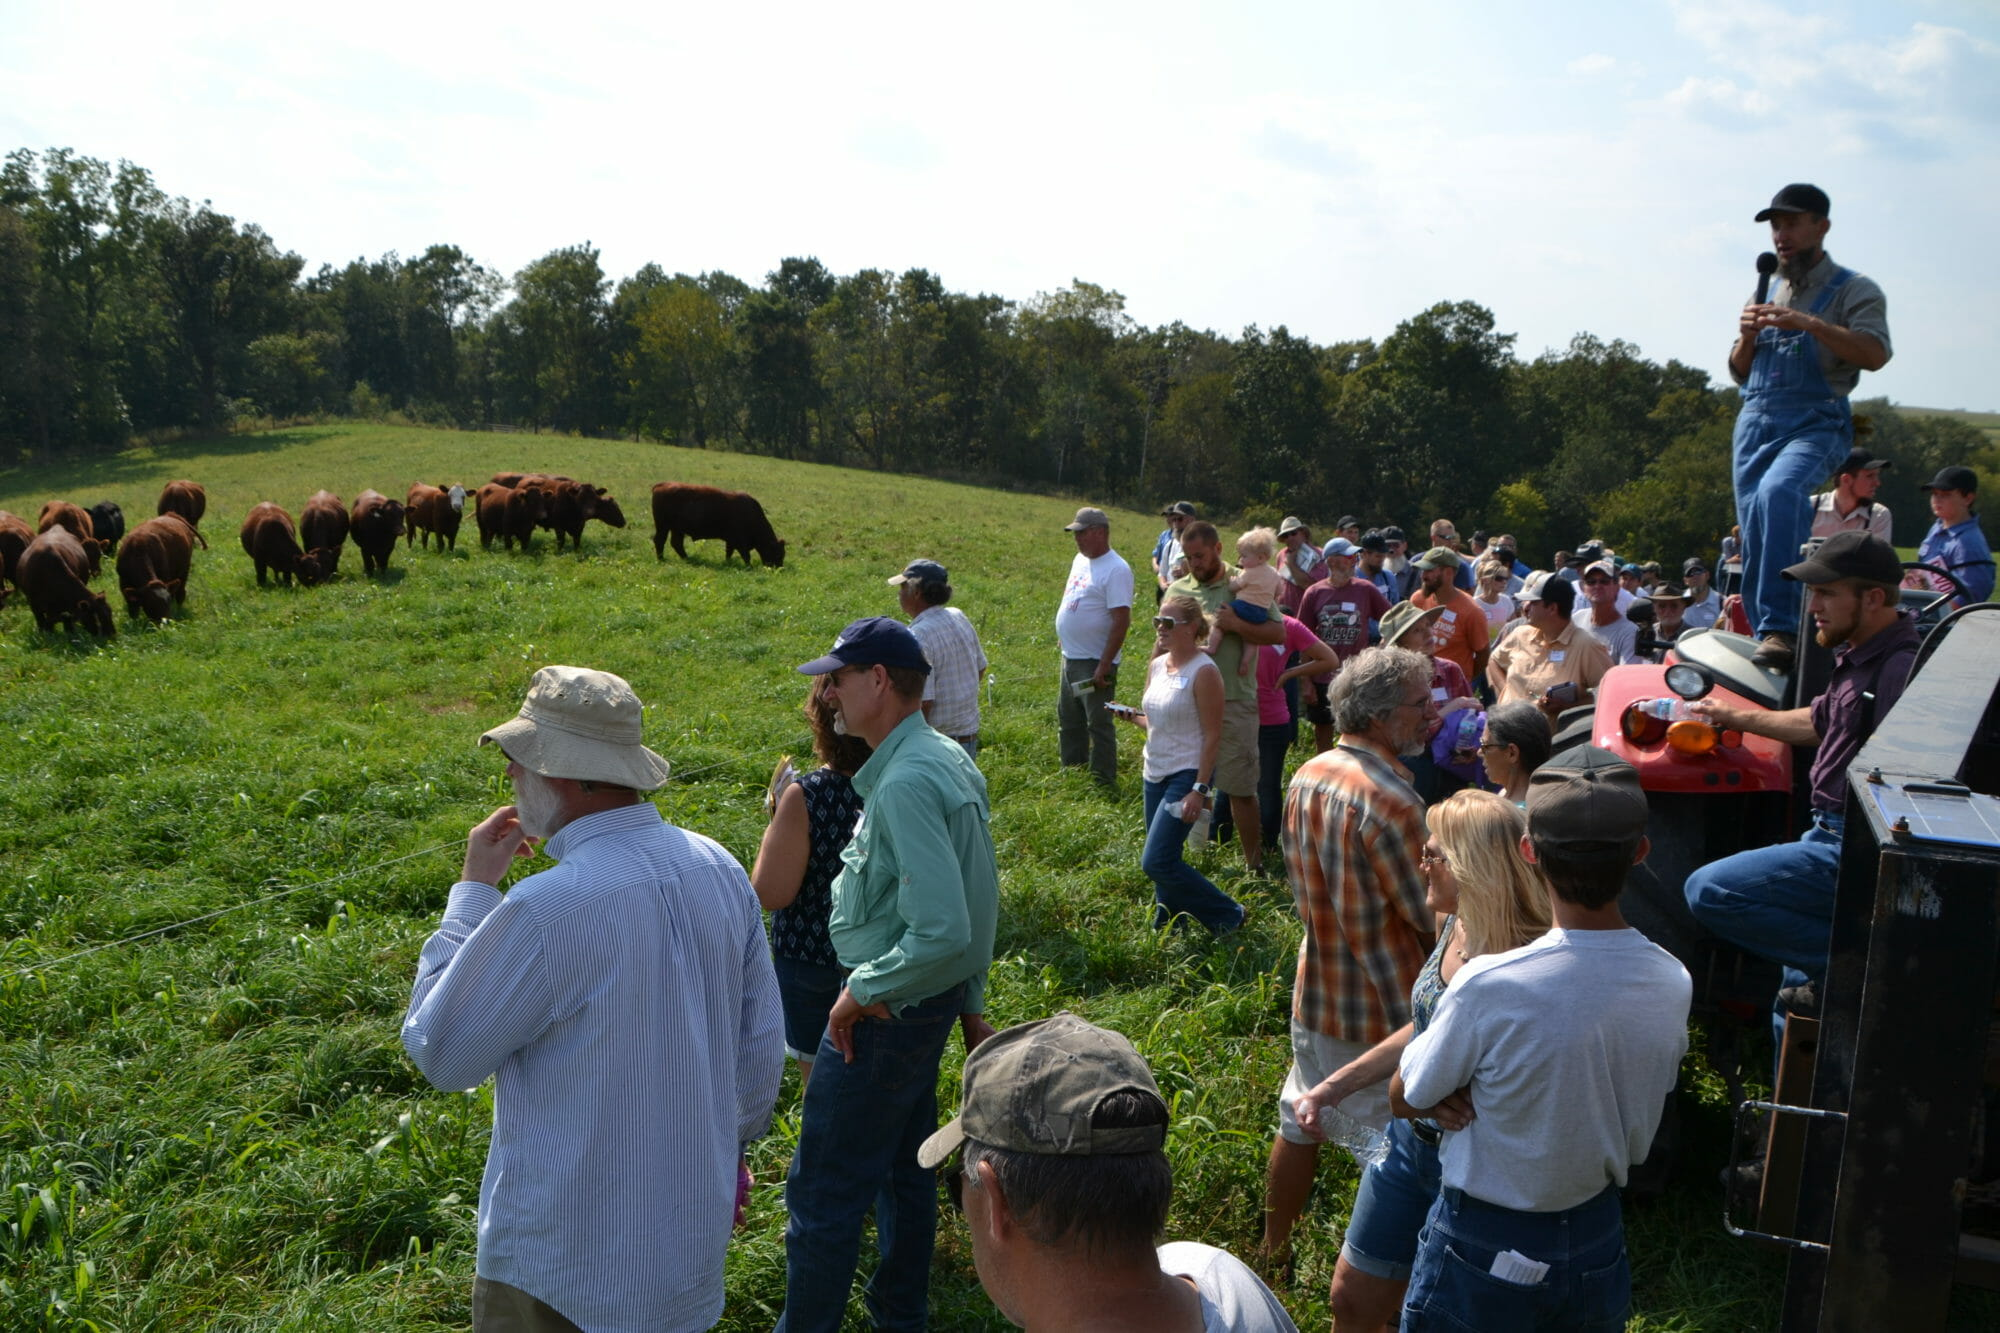 Jamie (above) speaks field day attendees about roational grazing.